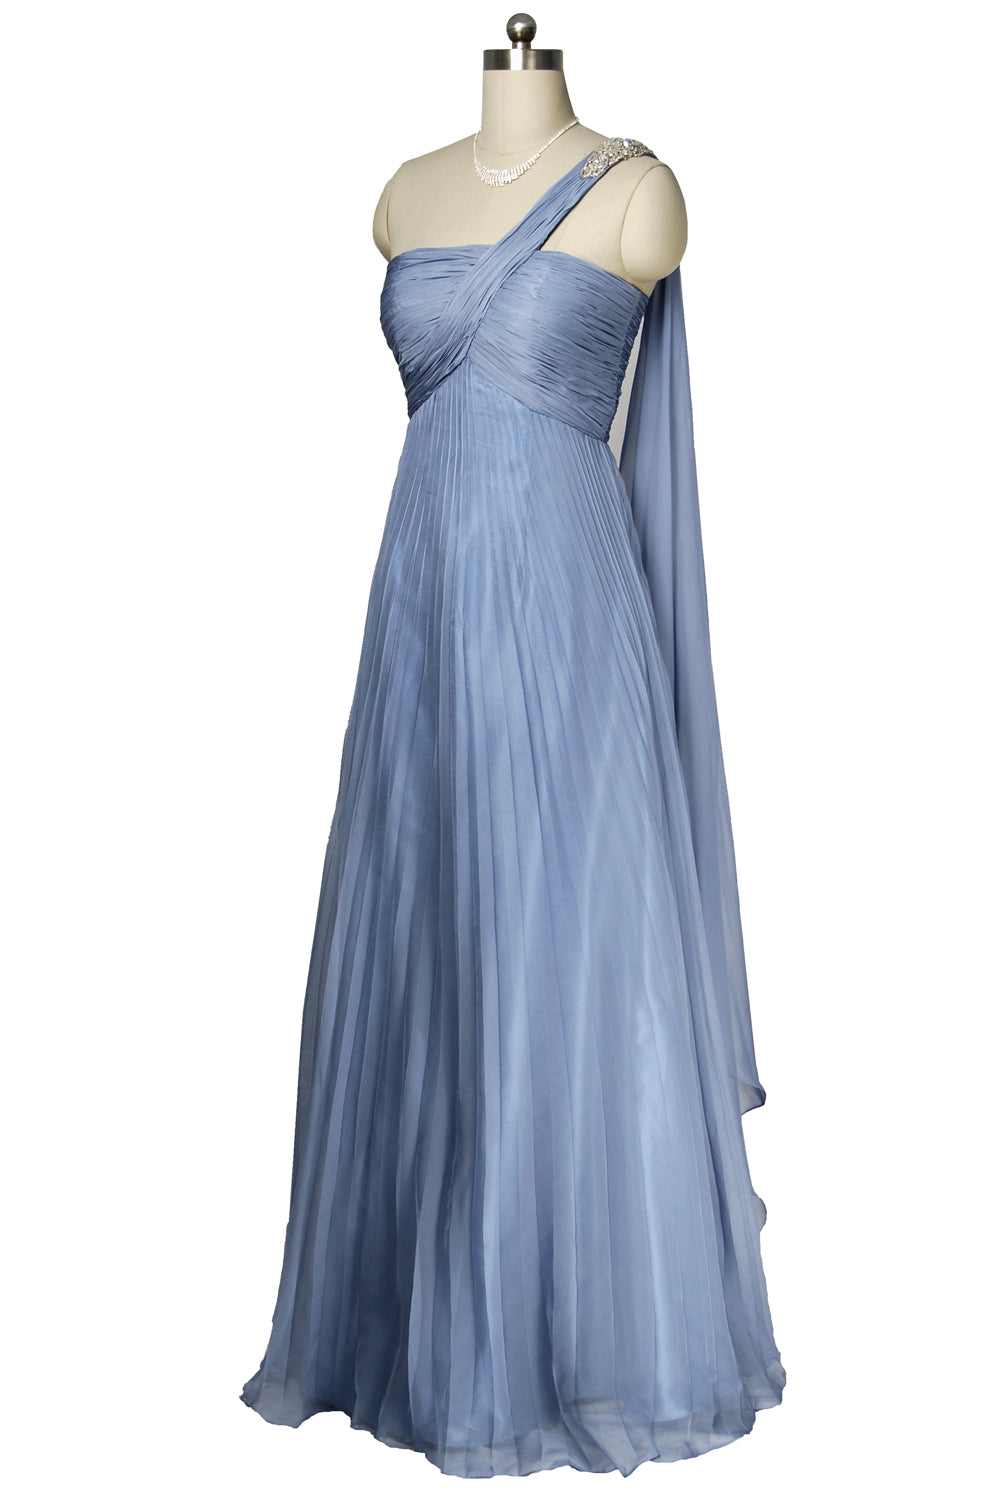 Blue Ruched Bodice one strap Chiffon Dress